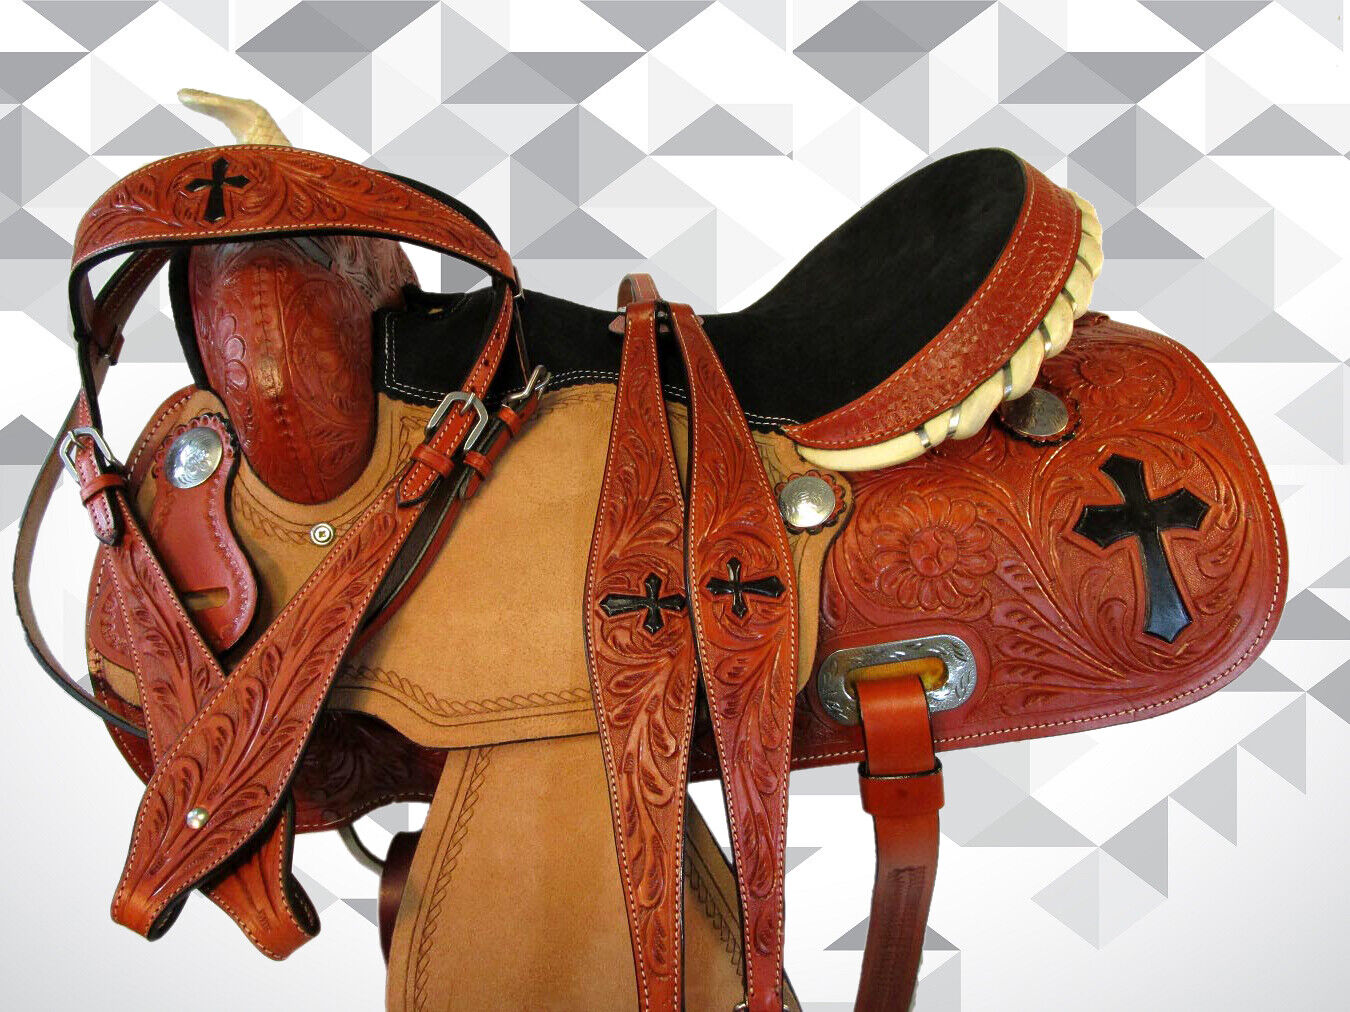 15 16 pro occidental barril Racer Racing Horse Show silla Trail placer Tachuela Set